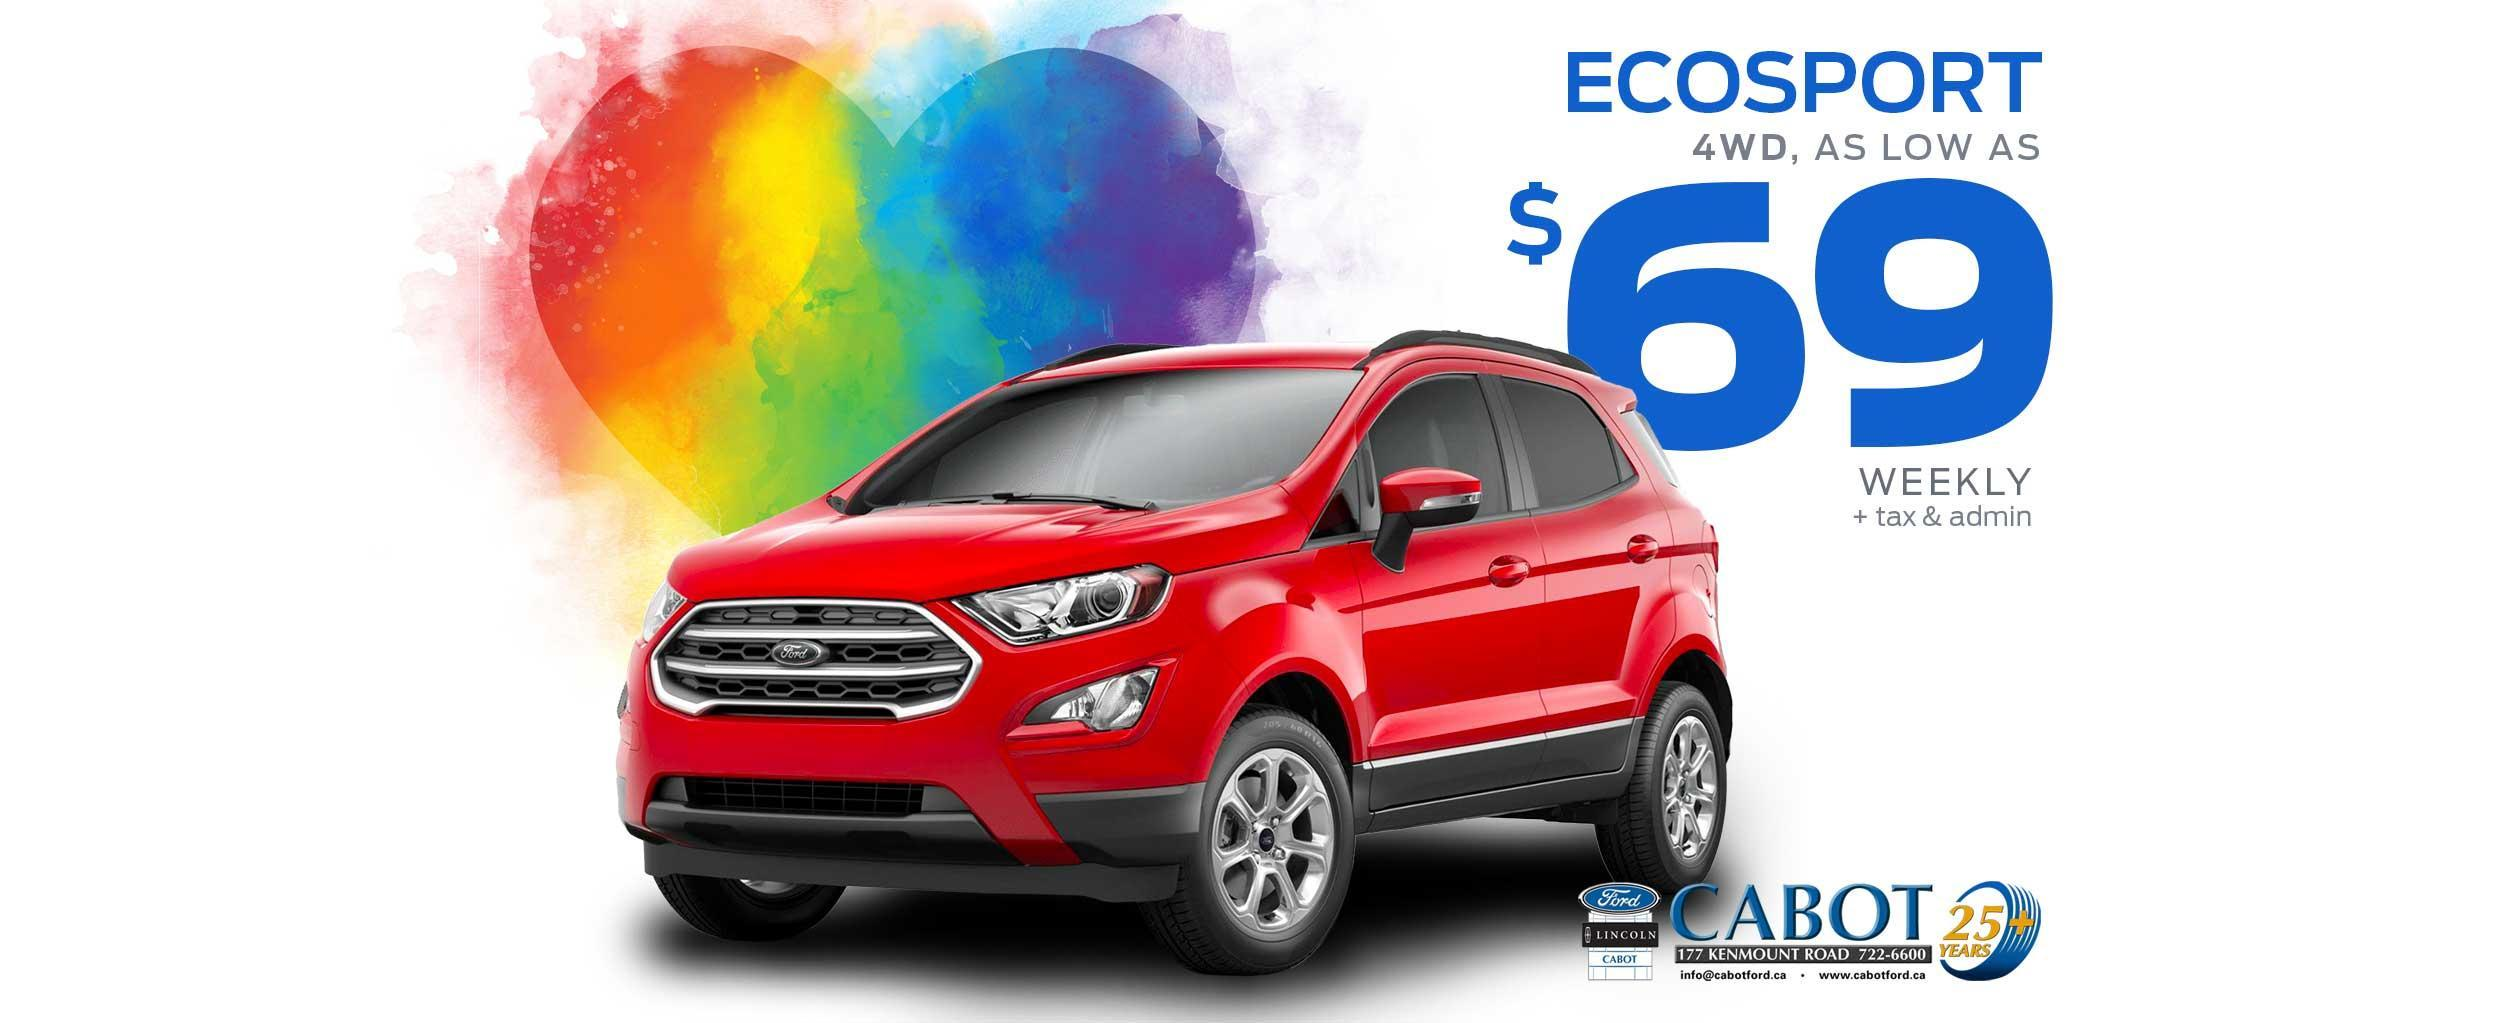 EcoSport 4WD SUV for as low as $69 weekly, plus tax & admin!